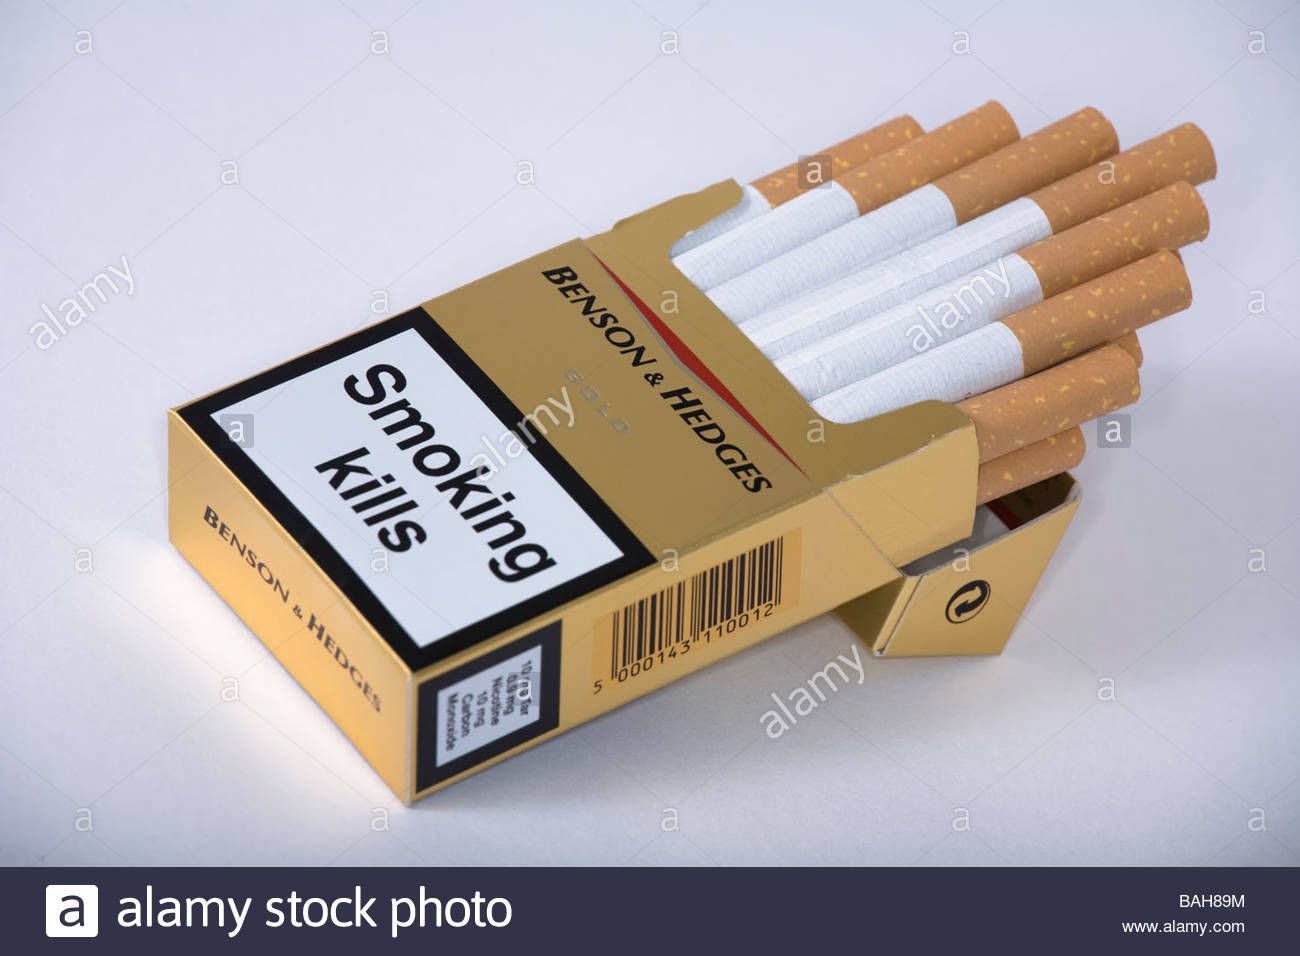 Menthol cigarettes brands in Montana